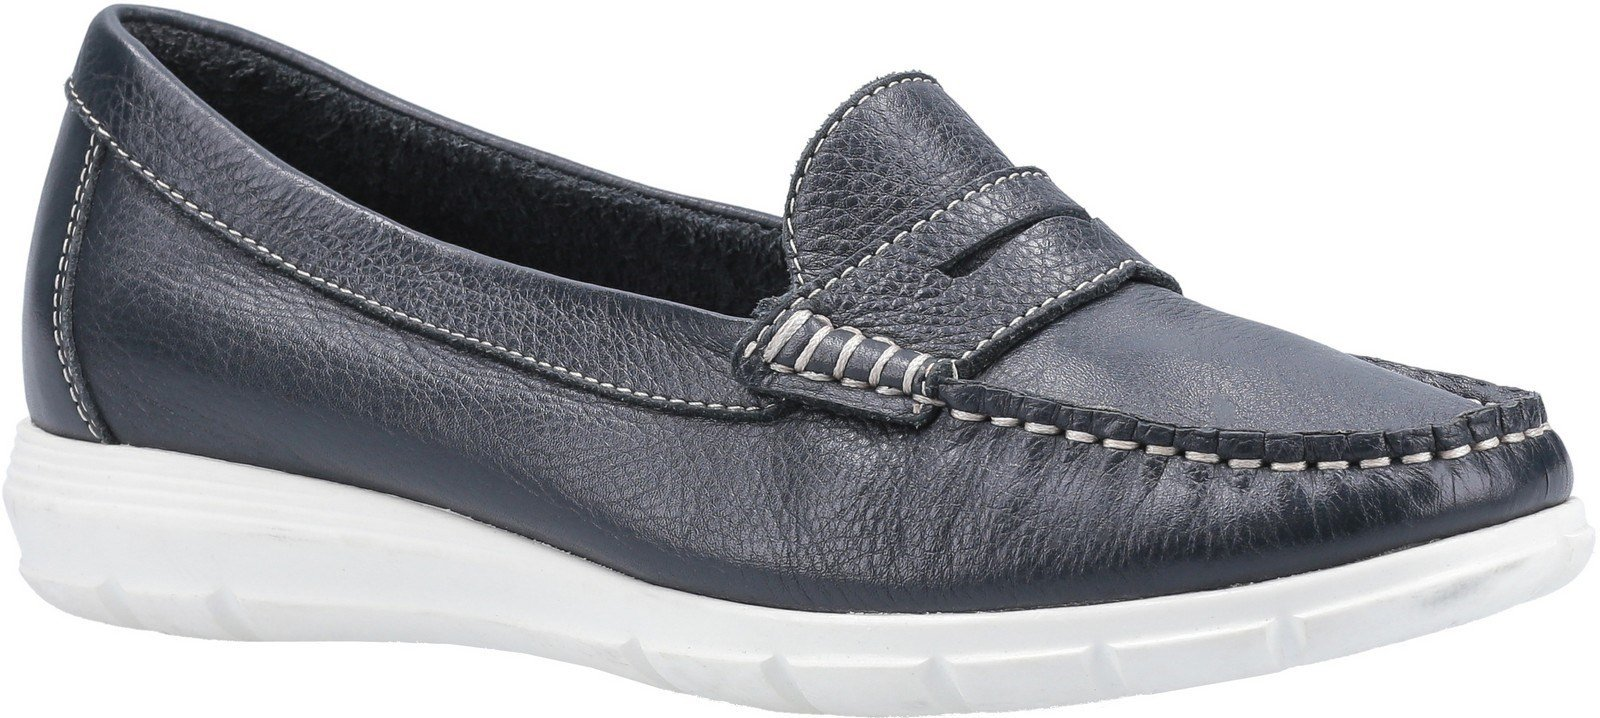 Hush Puppies Women's Paige Slip On Loafer Various Colours 30242 - Navy 4